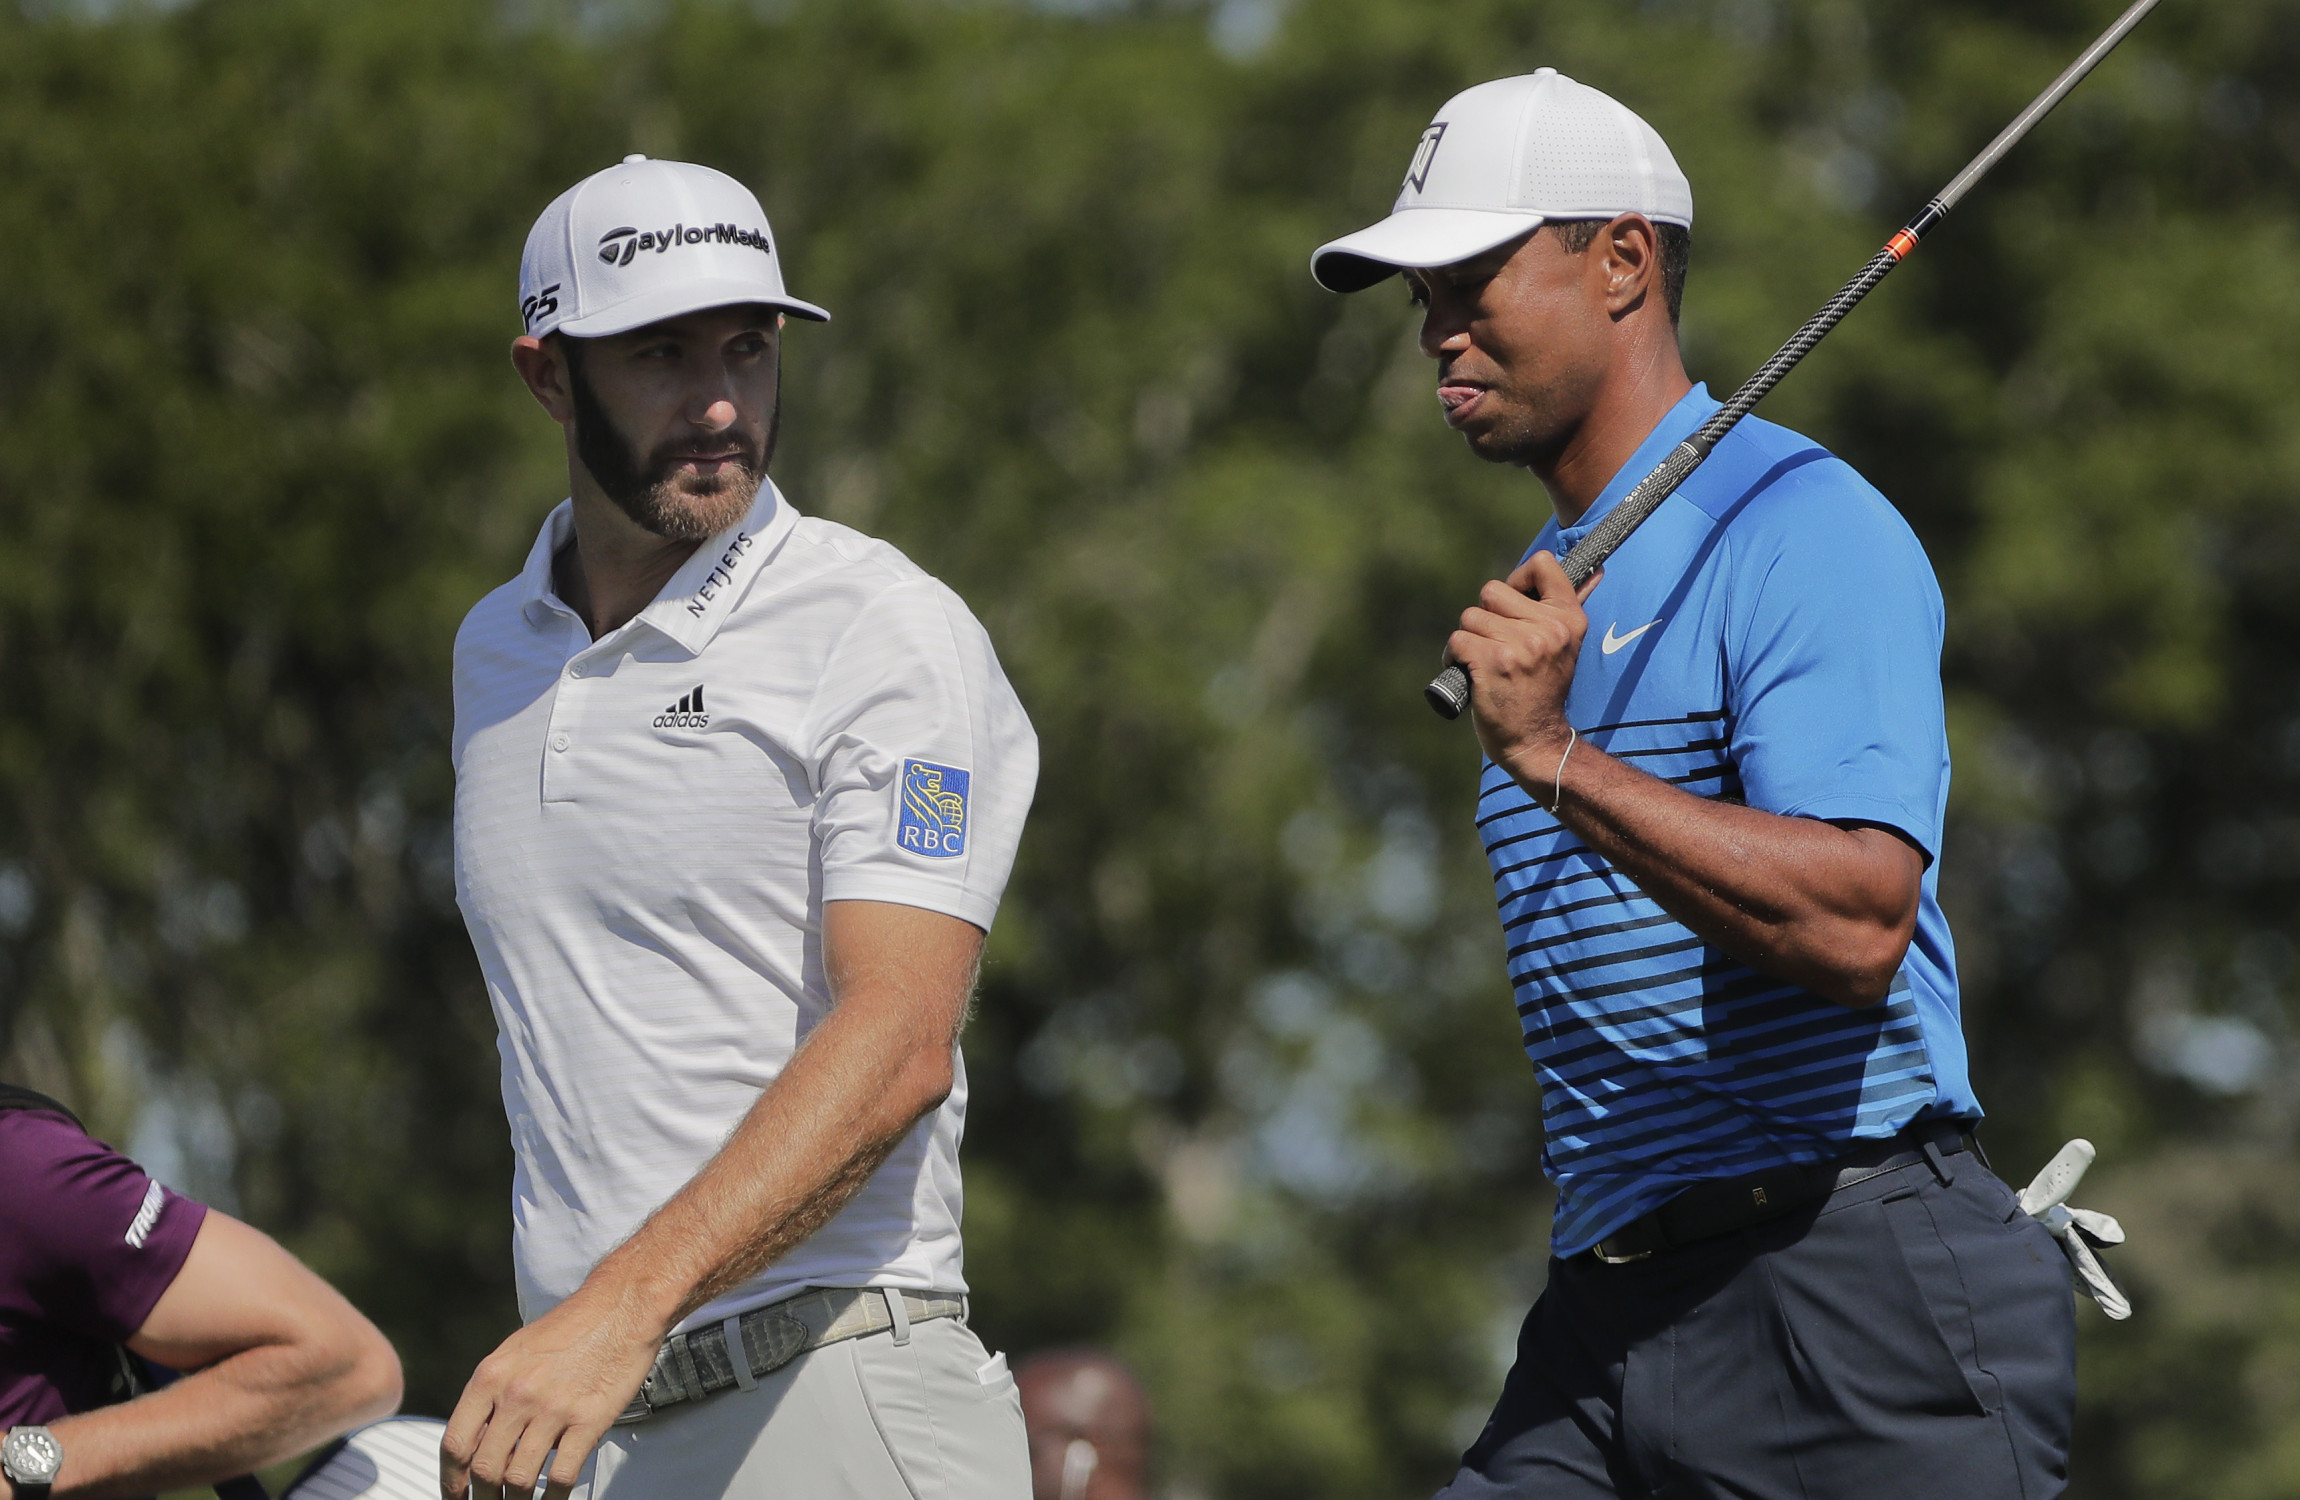 Dustin Johnson shares US Open lead; Rory McIlroy, Tiger Woods struggle